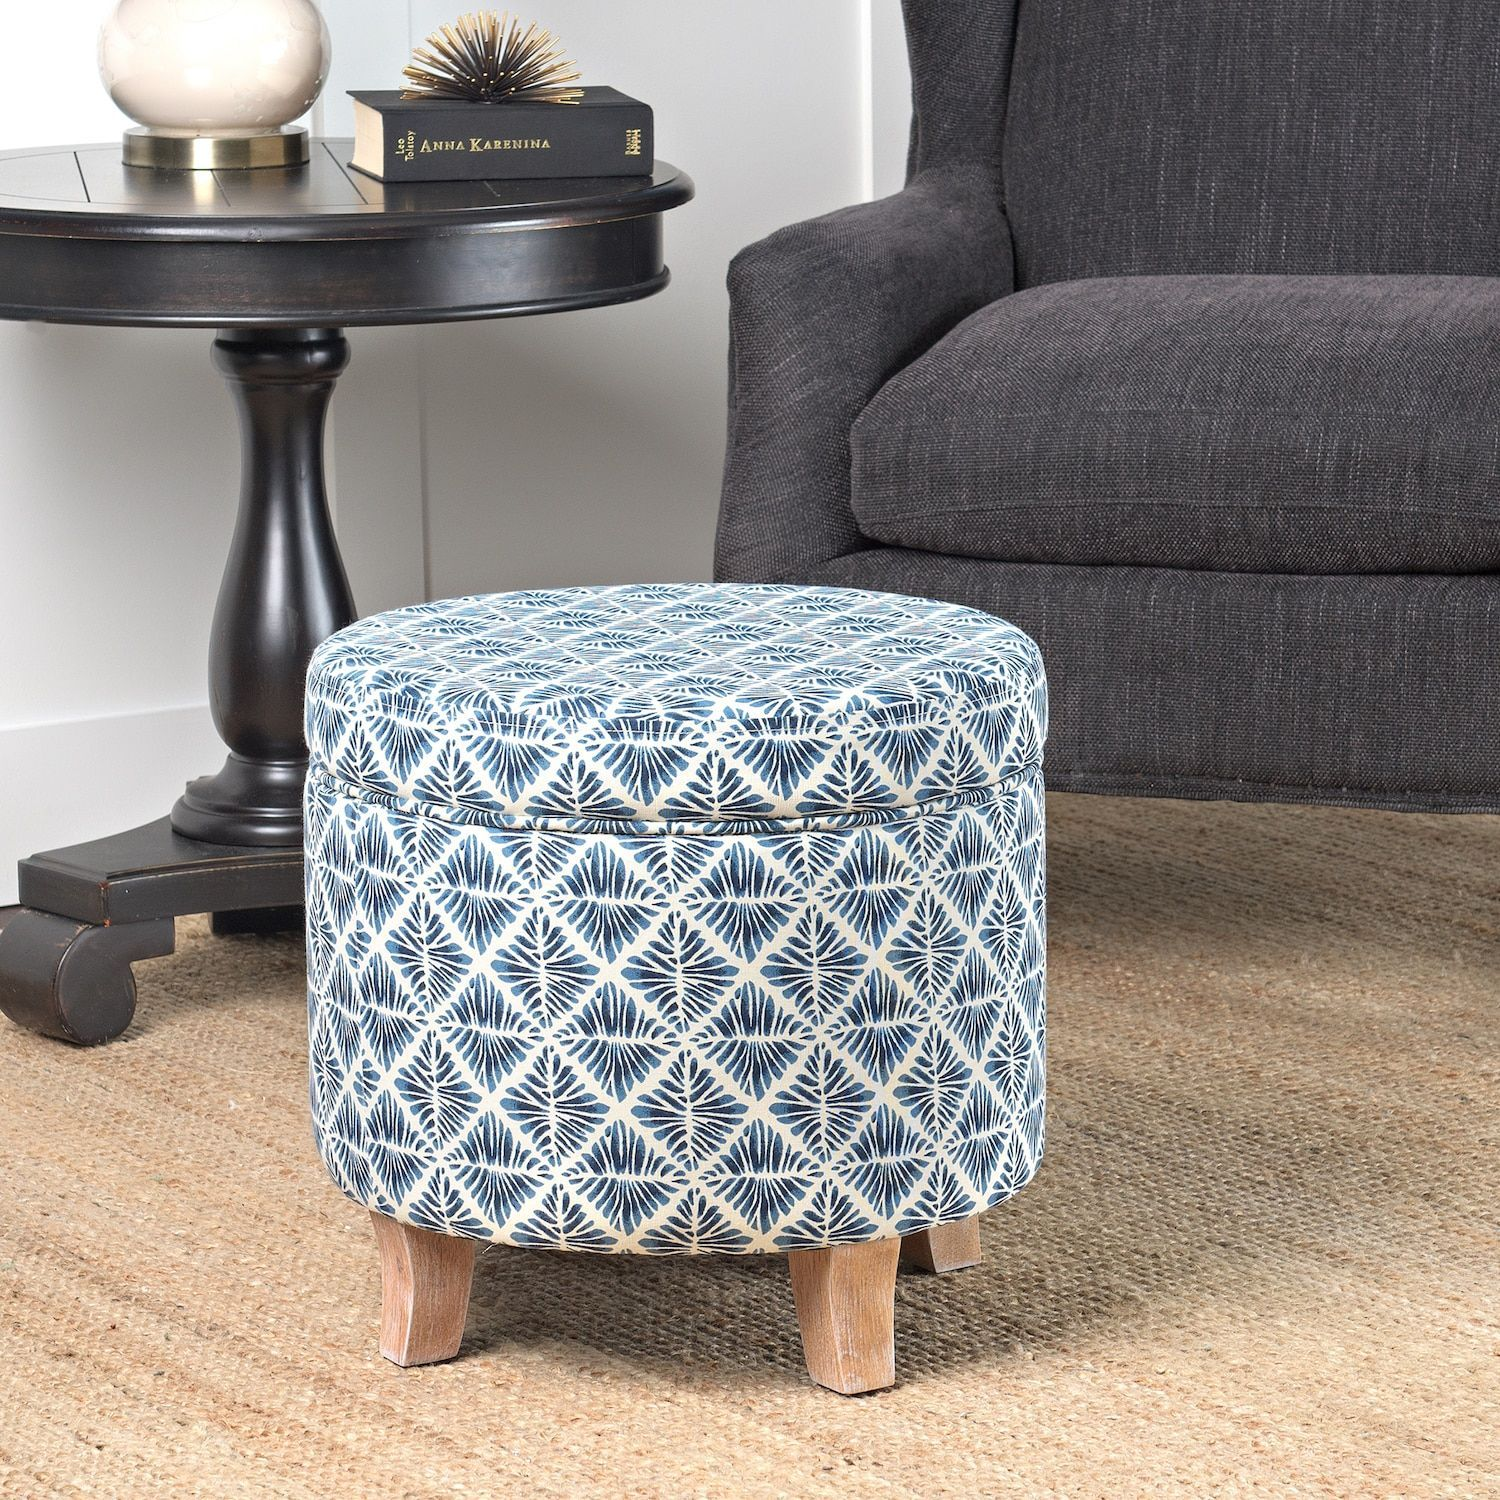 Homepop cole classics round storage ottoman flared wood leg in modern navy and white geometric navy and white blue size small fabric